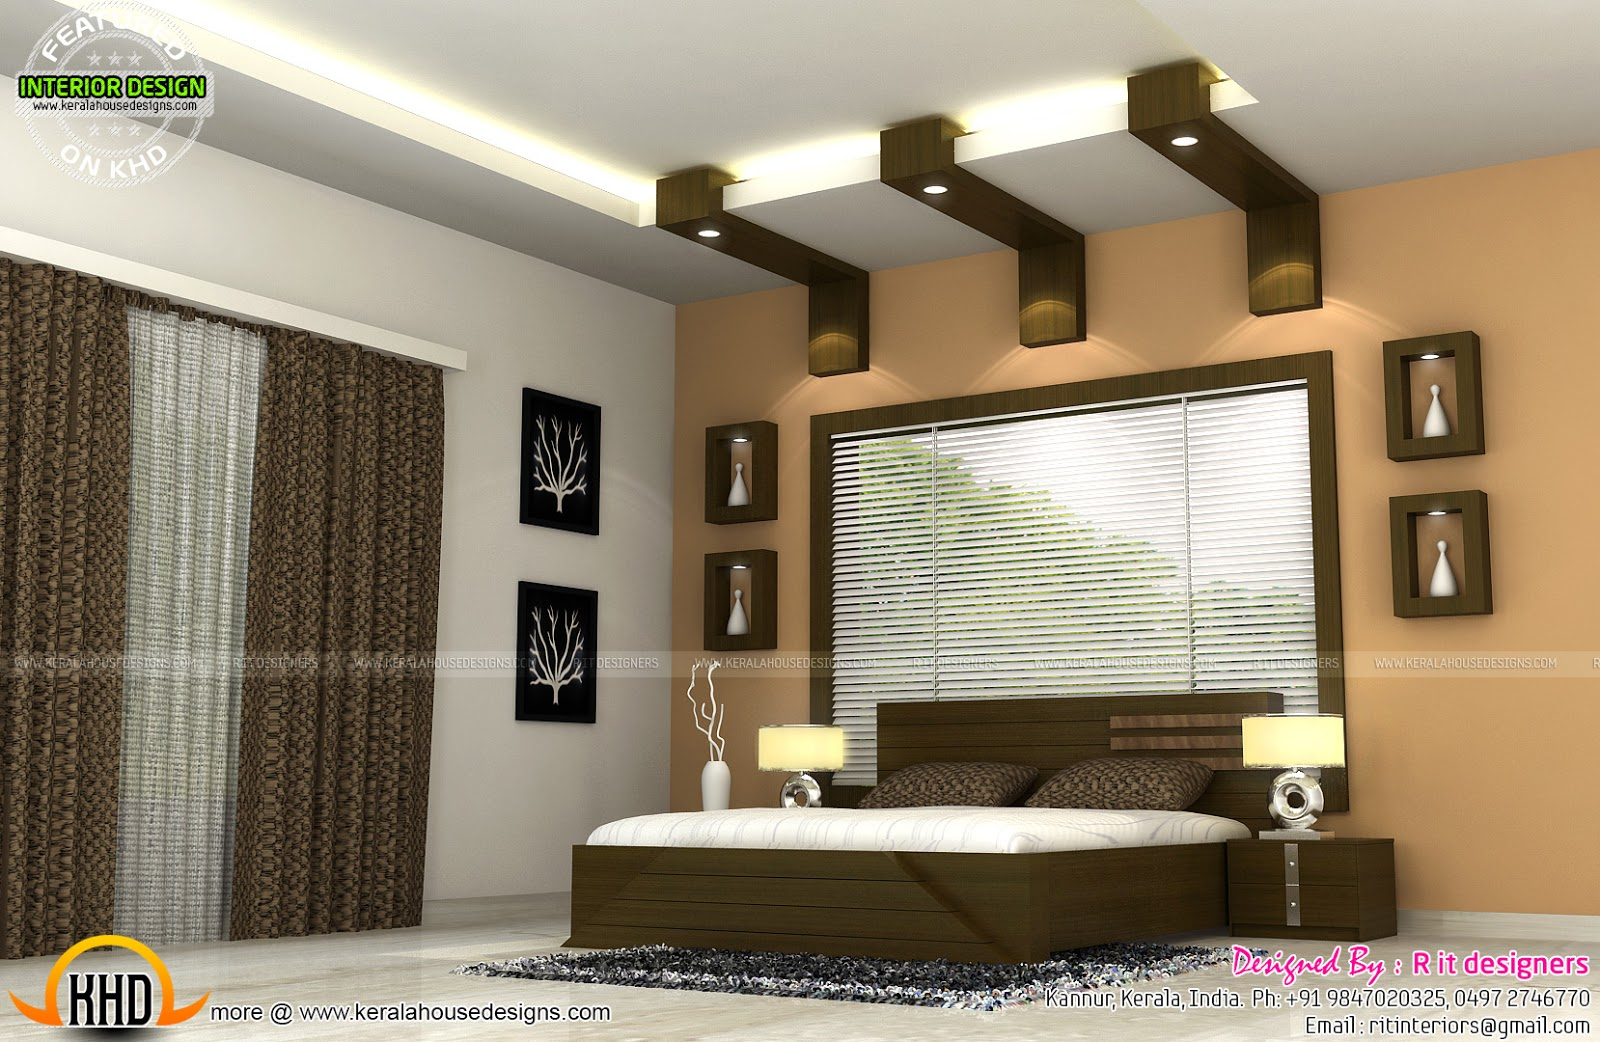 Interiors of bedrooms and kitchen kerala home design and for Home design bedroom ideas